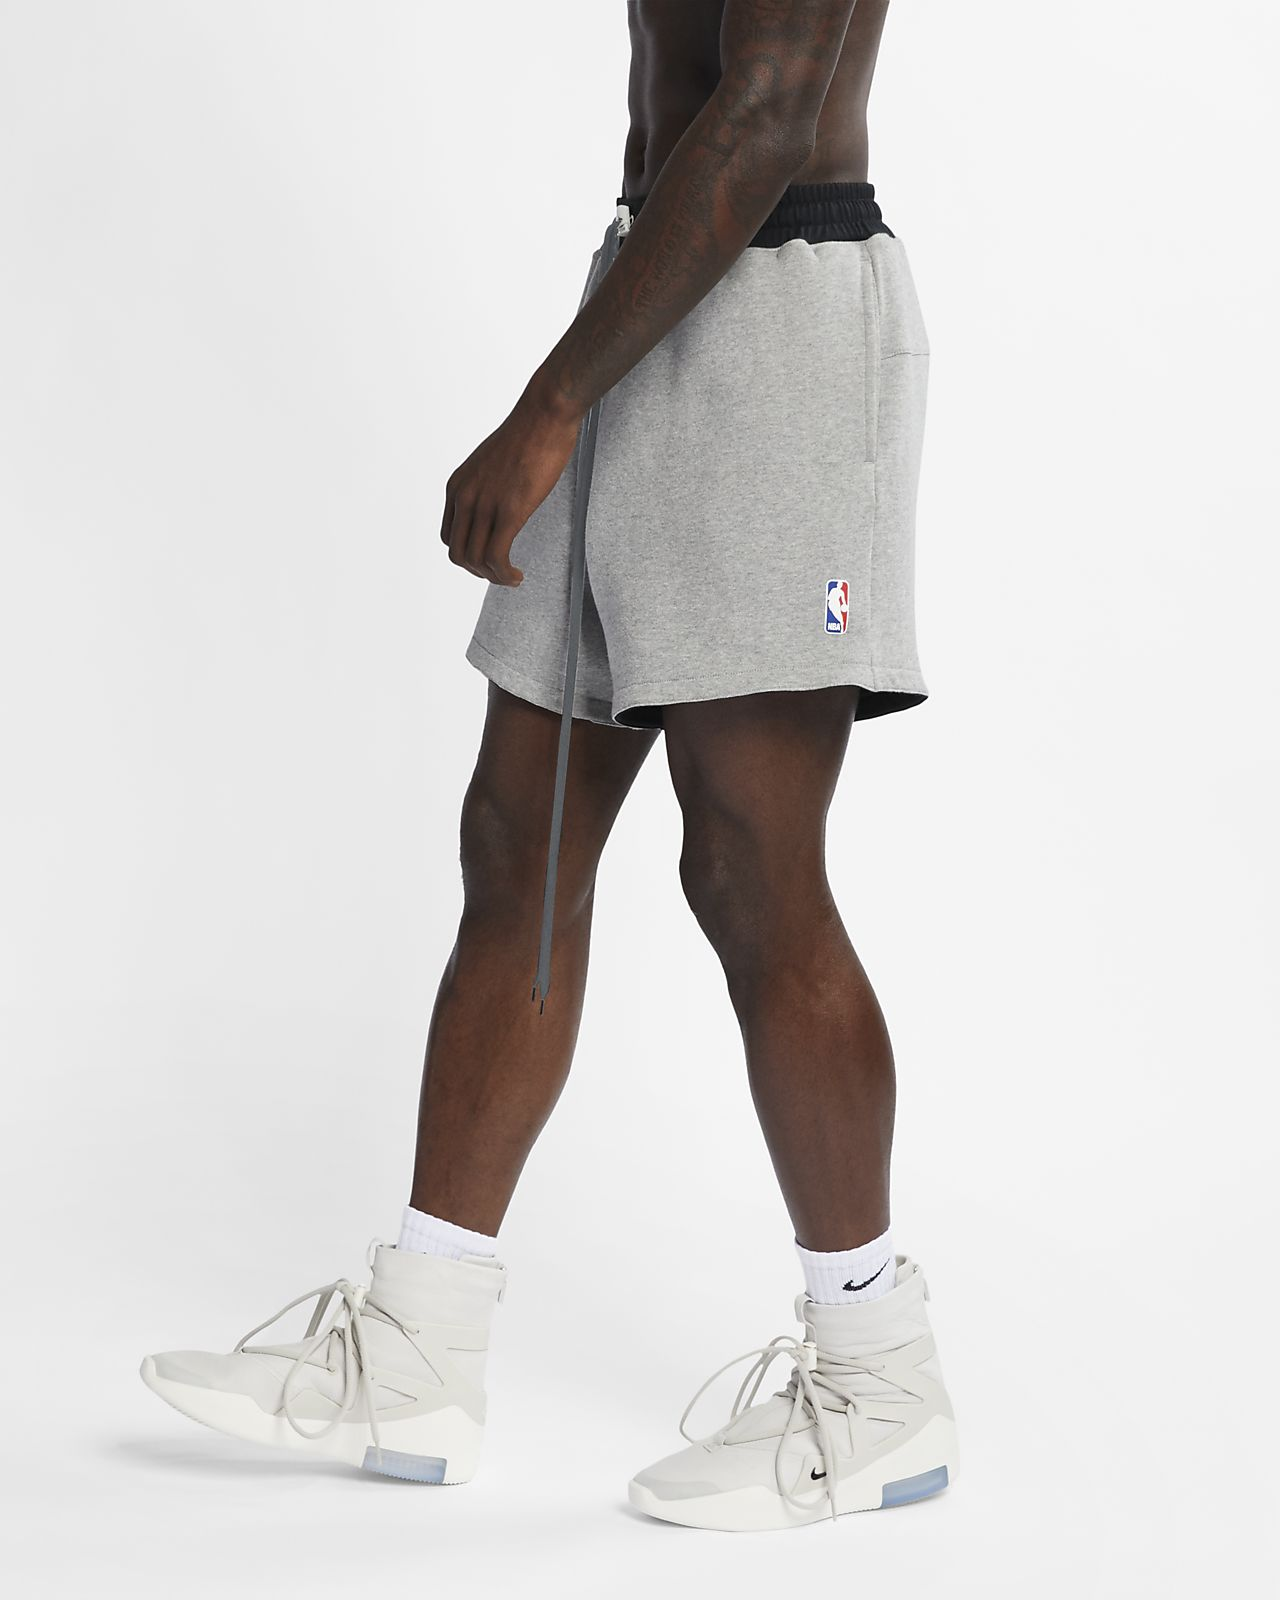 fear of god nba pants Sale,up to 52